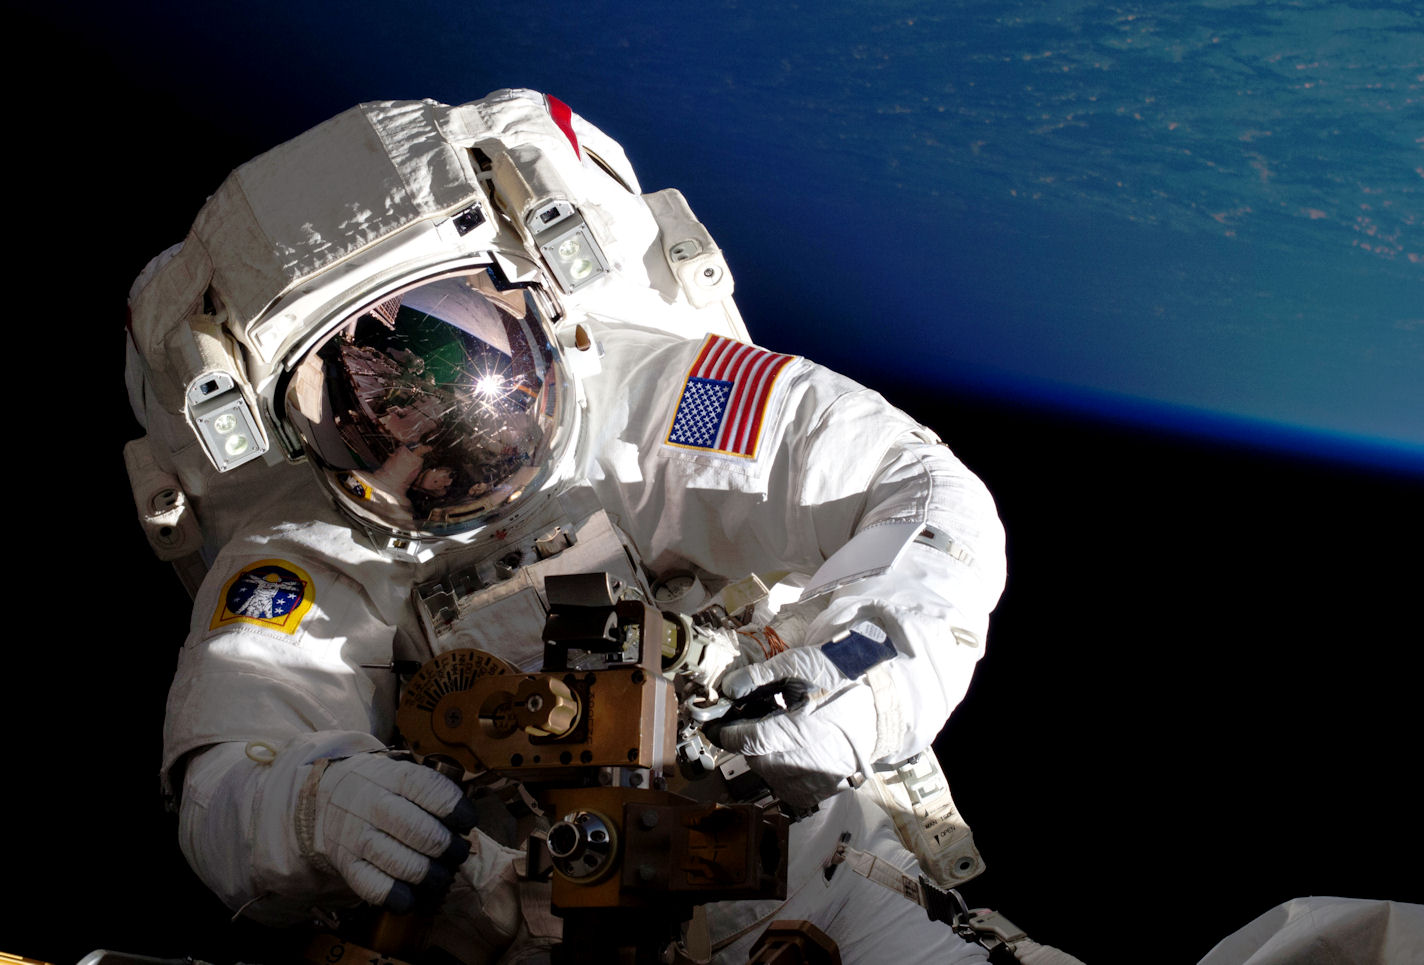 astronaut spacewalk for android - HD1424×965